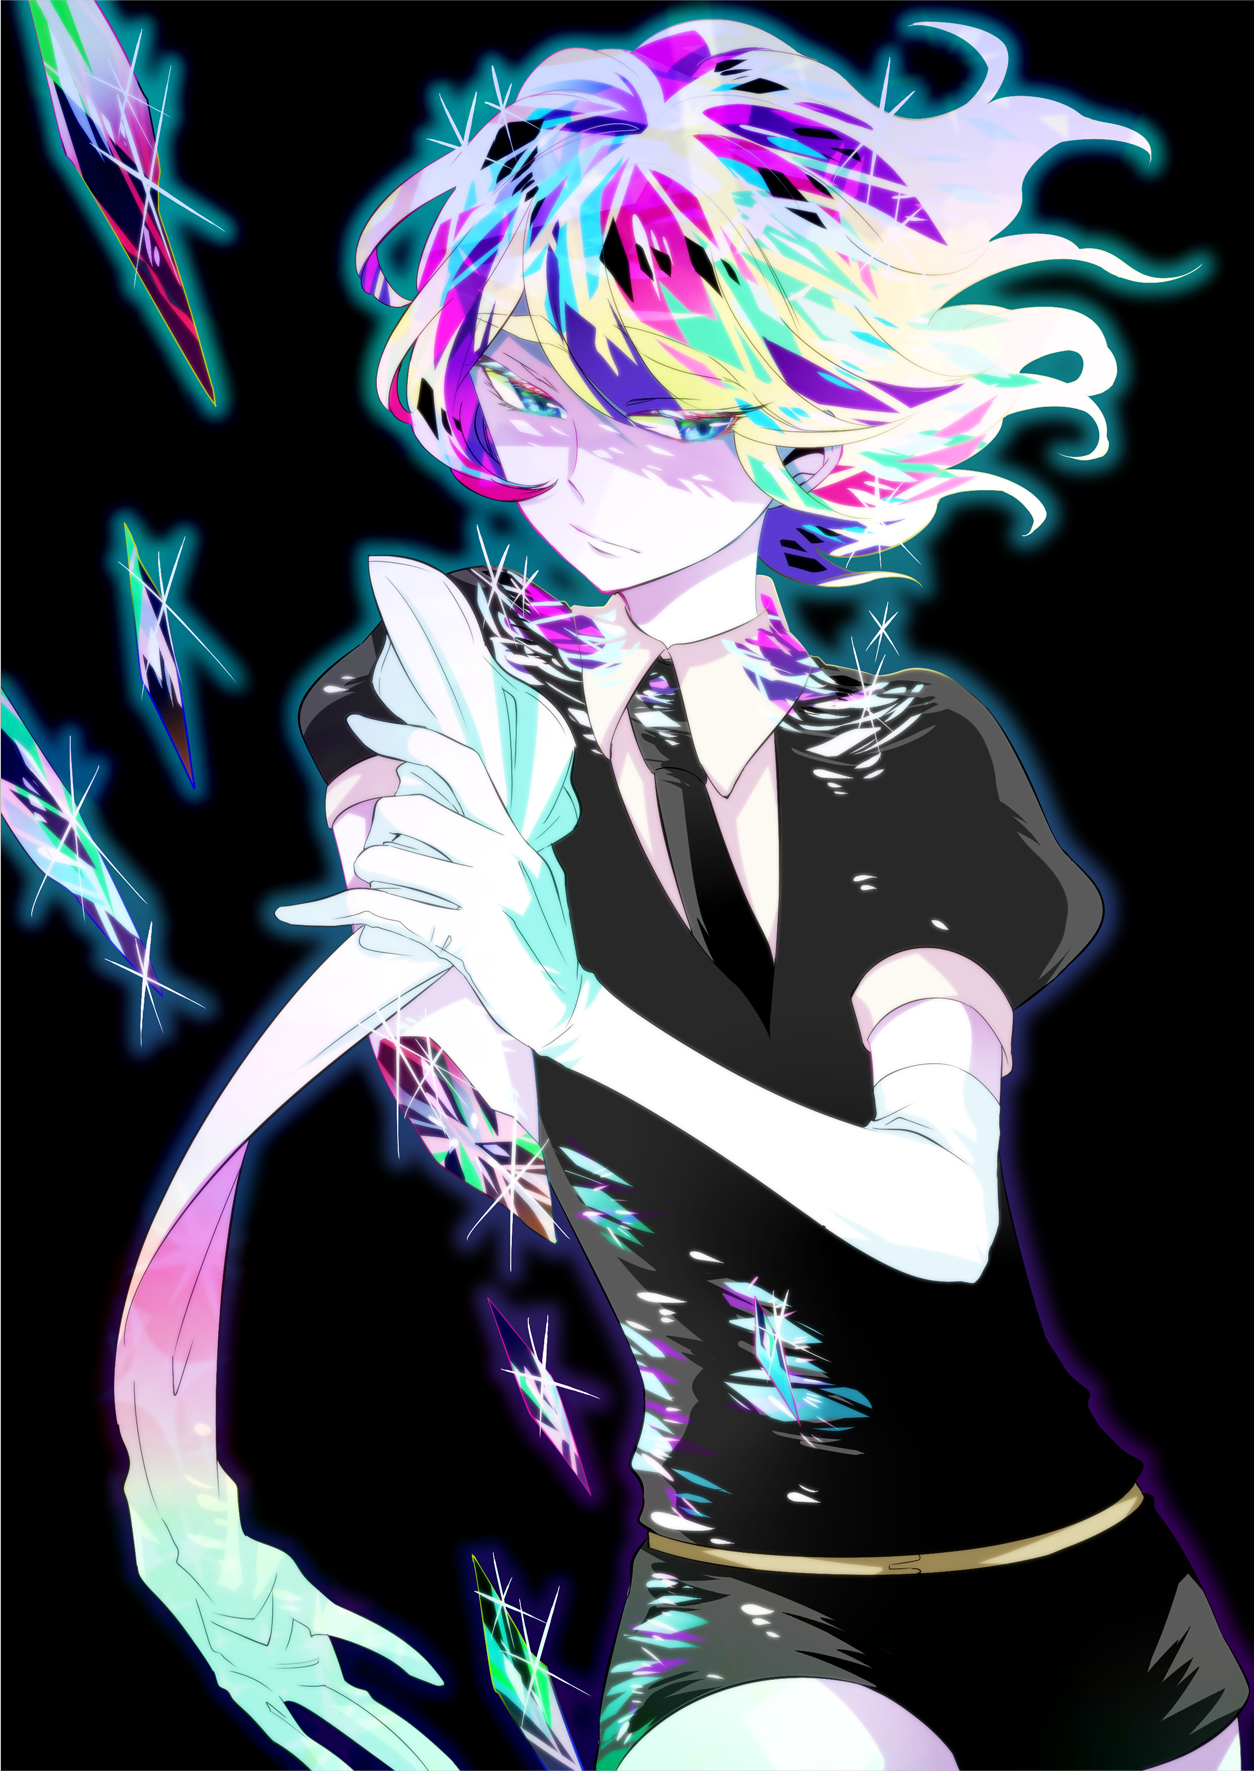 Houseki No Kuni Wallpaper Posted By Zoey Tremblay